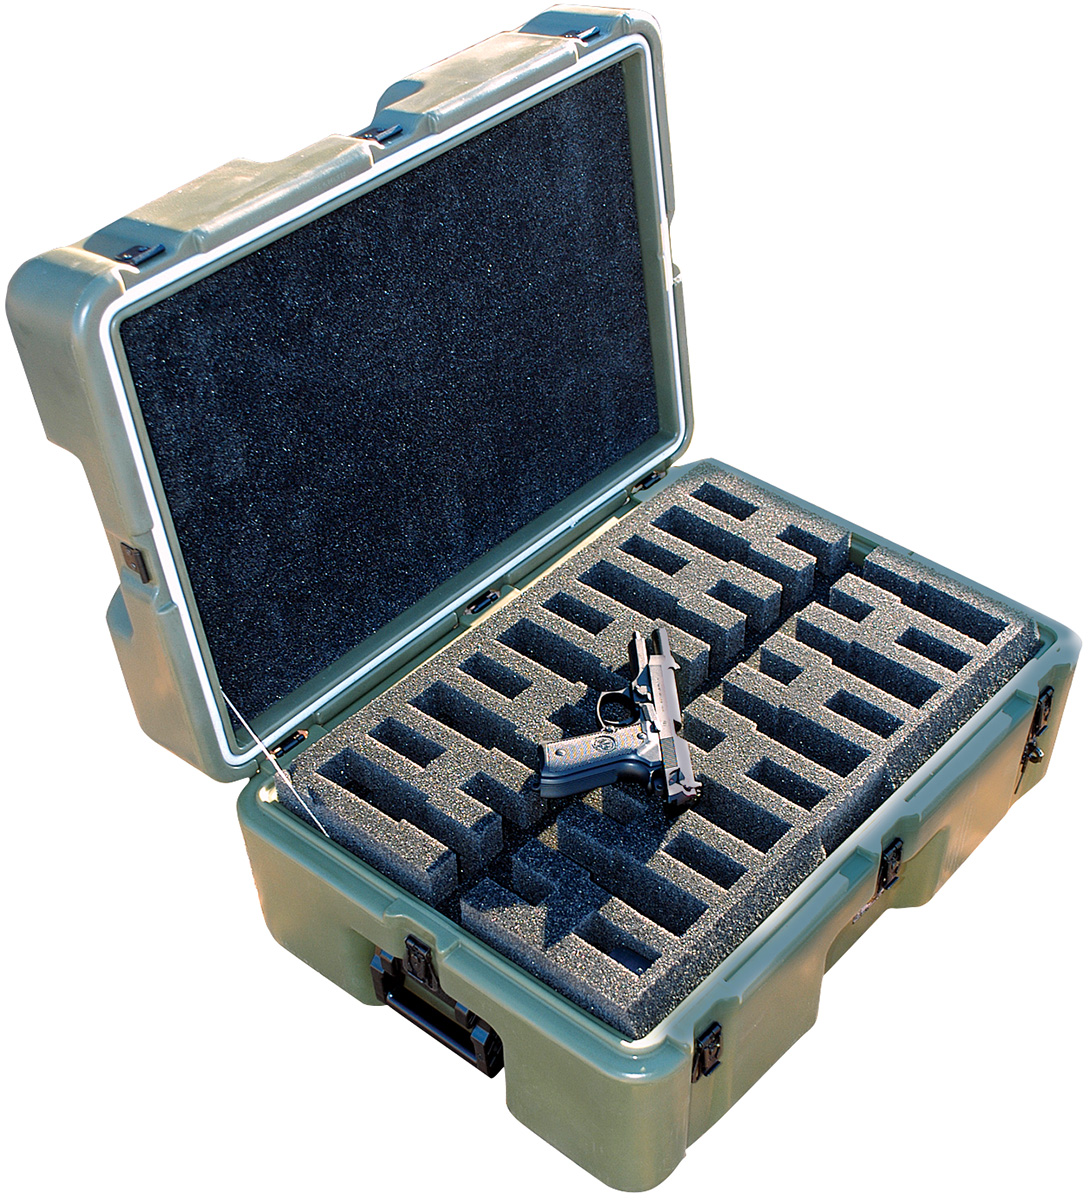 pelican peli products 472 M9 10 military m9 pistol transport case